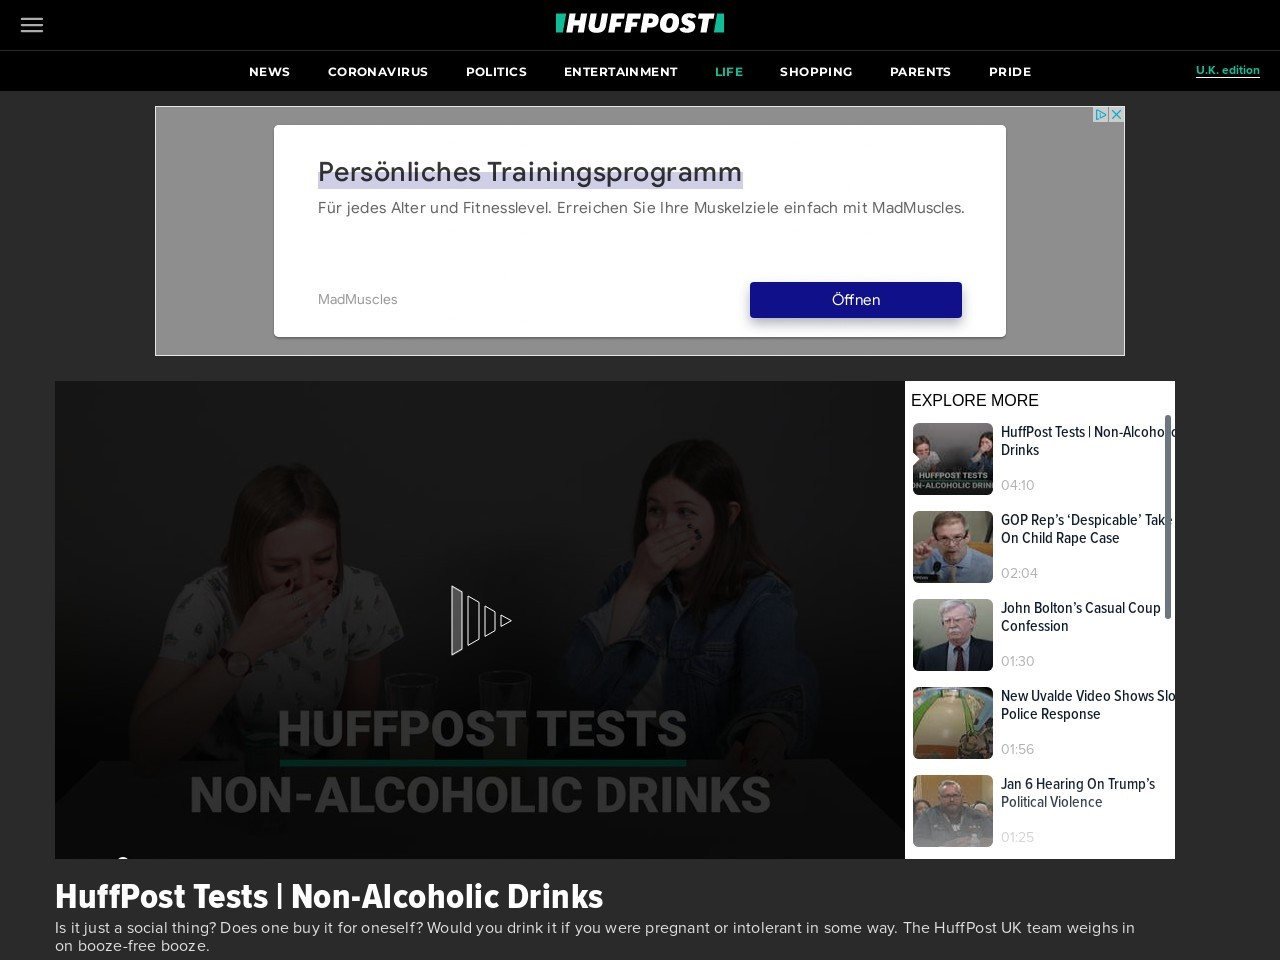 HuffPost Tests | Non-Alcoholic Drinks